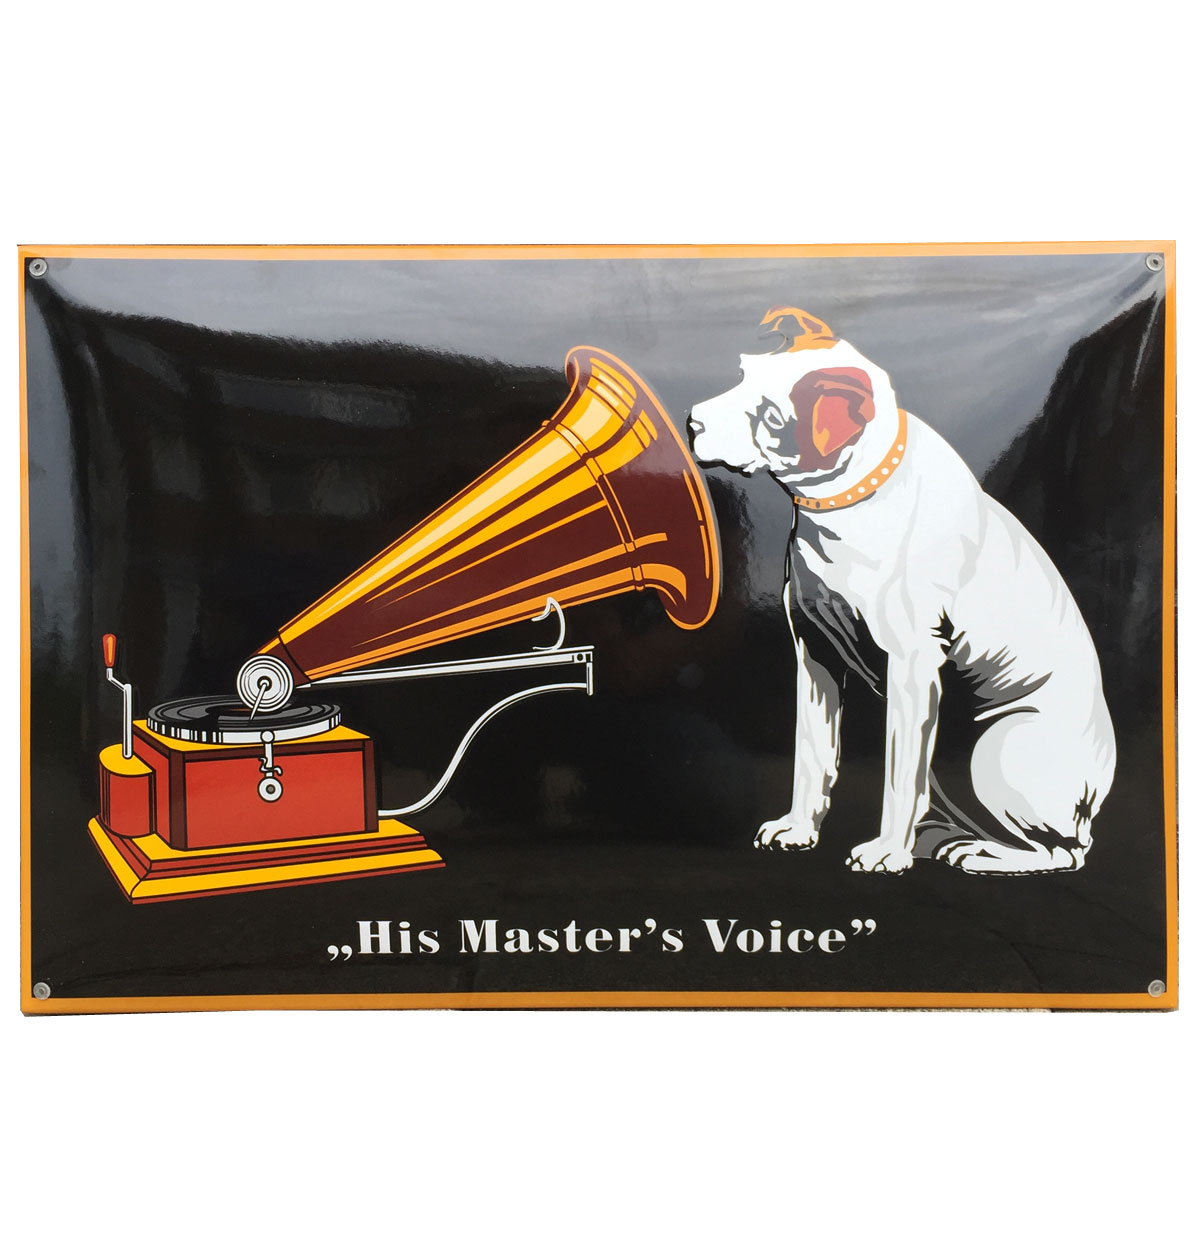 His Master's Voice Groot Emaille Bord V.1